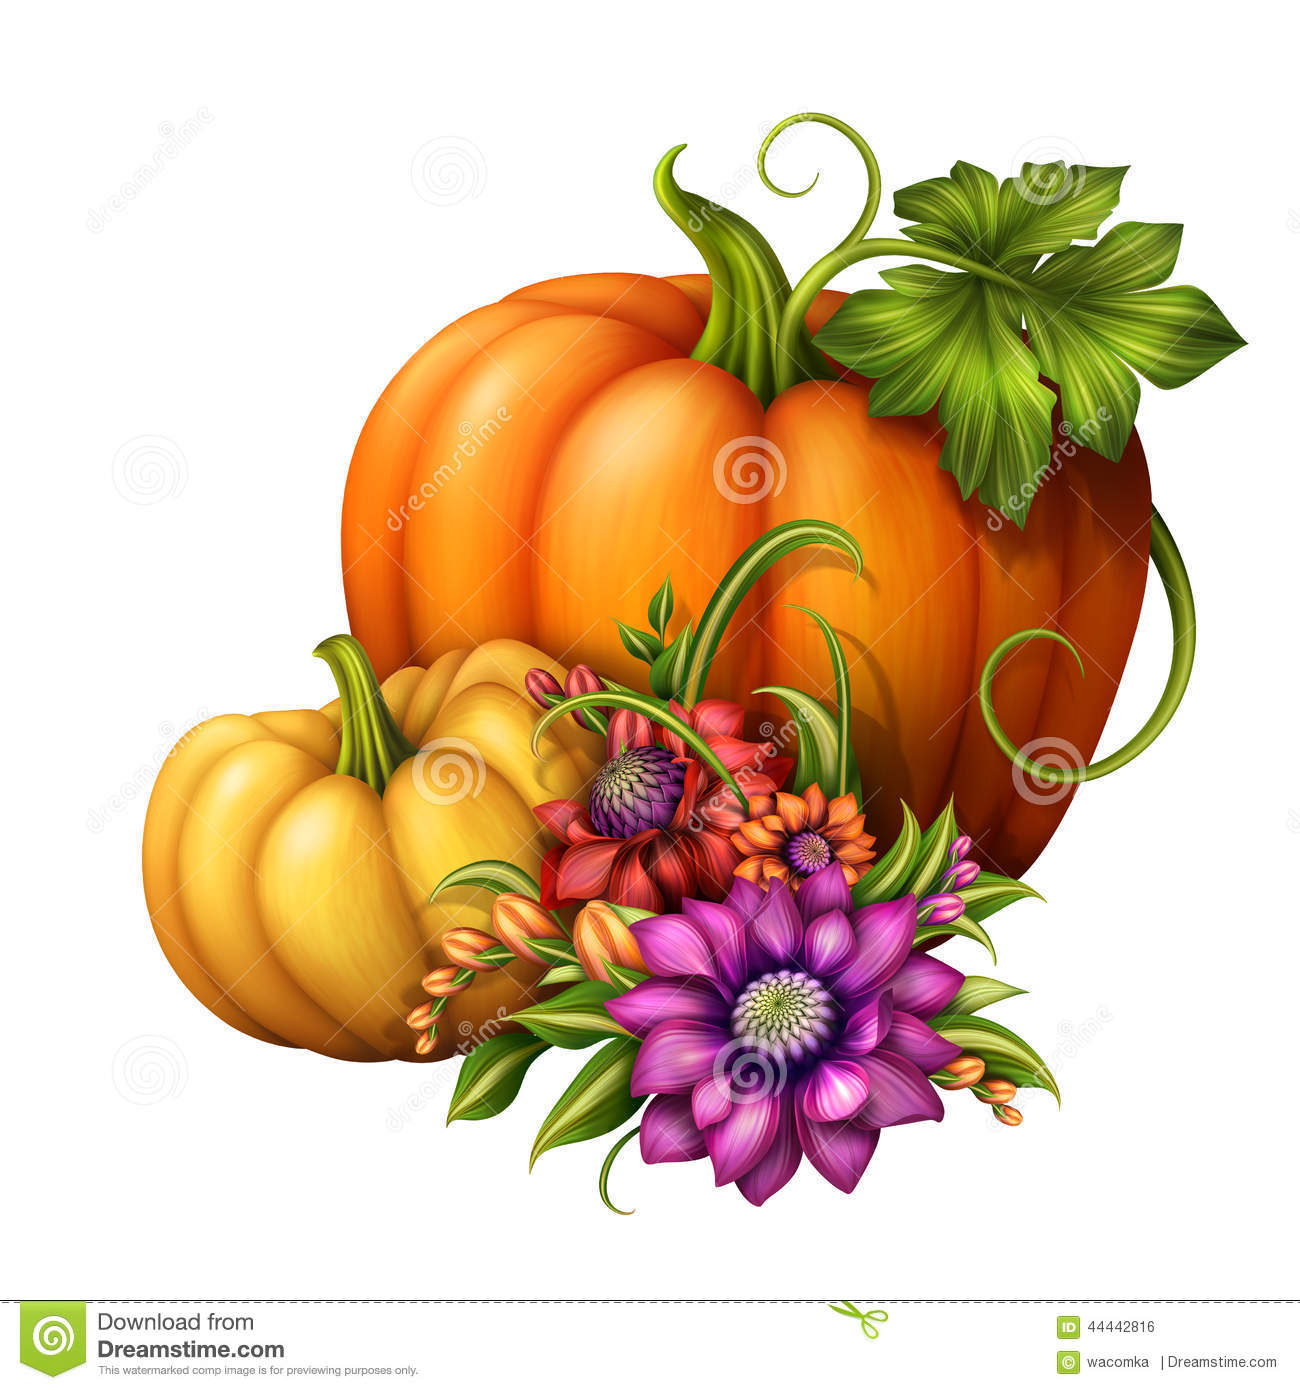 autumn pumpkins with seasonal flowers illustration isolated on